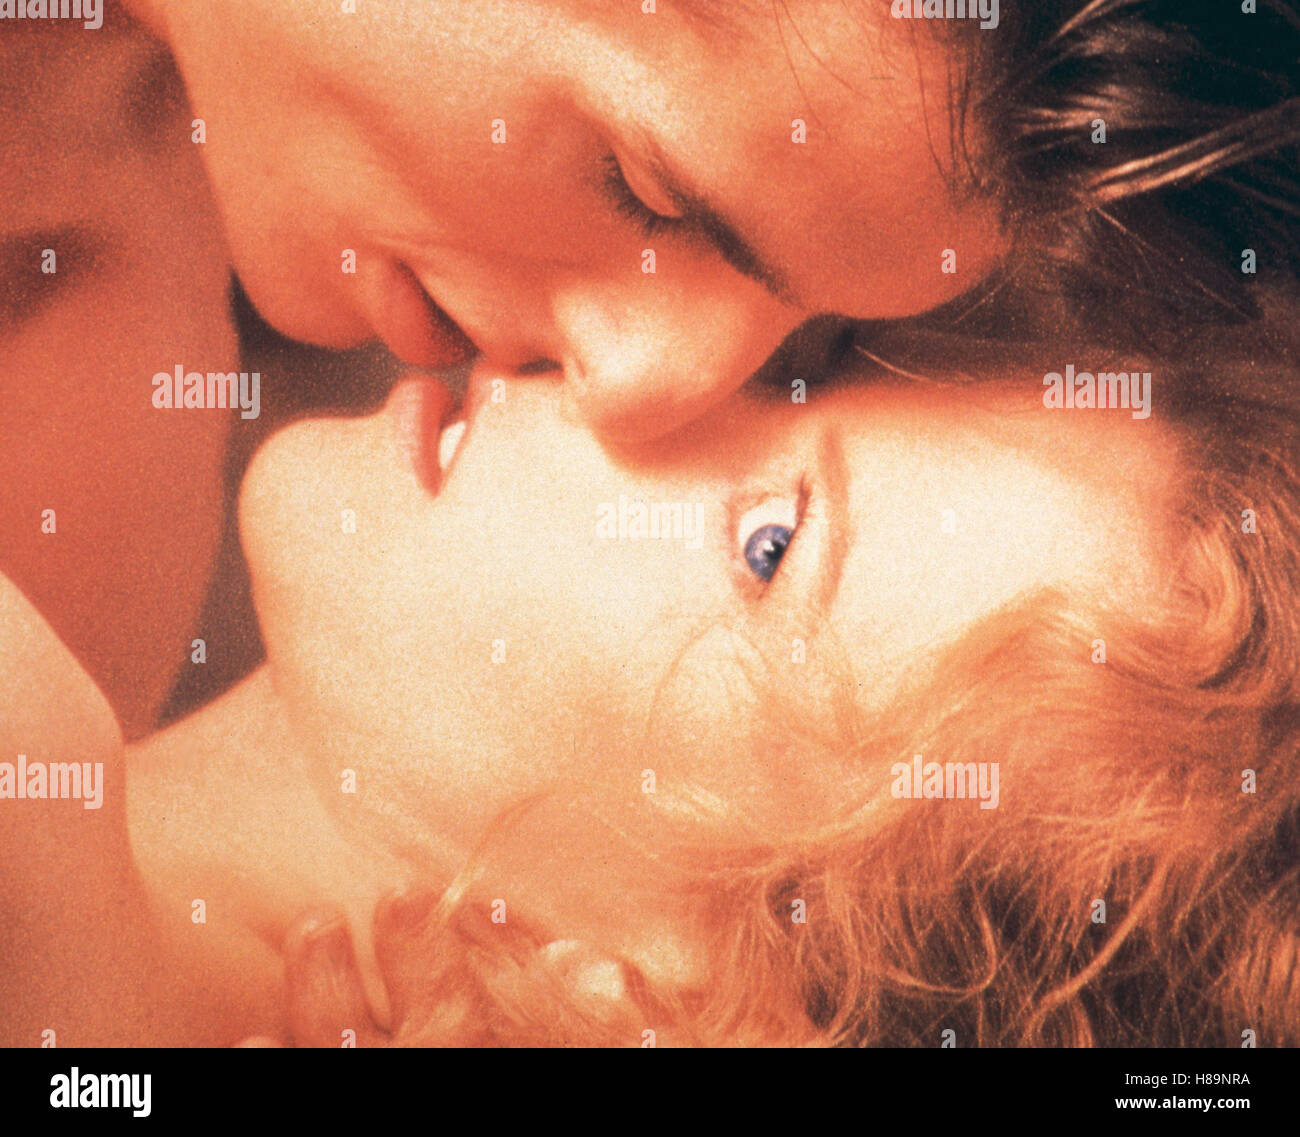 Eyes wide shut, (EYES WIDE SHUT) USA 1999, Regie: Stanley Kubrick, TOM CRUISE, NICOLE KIDMAN - Stock Image